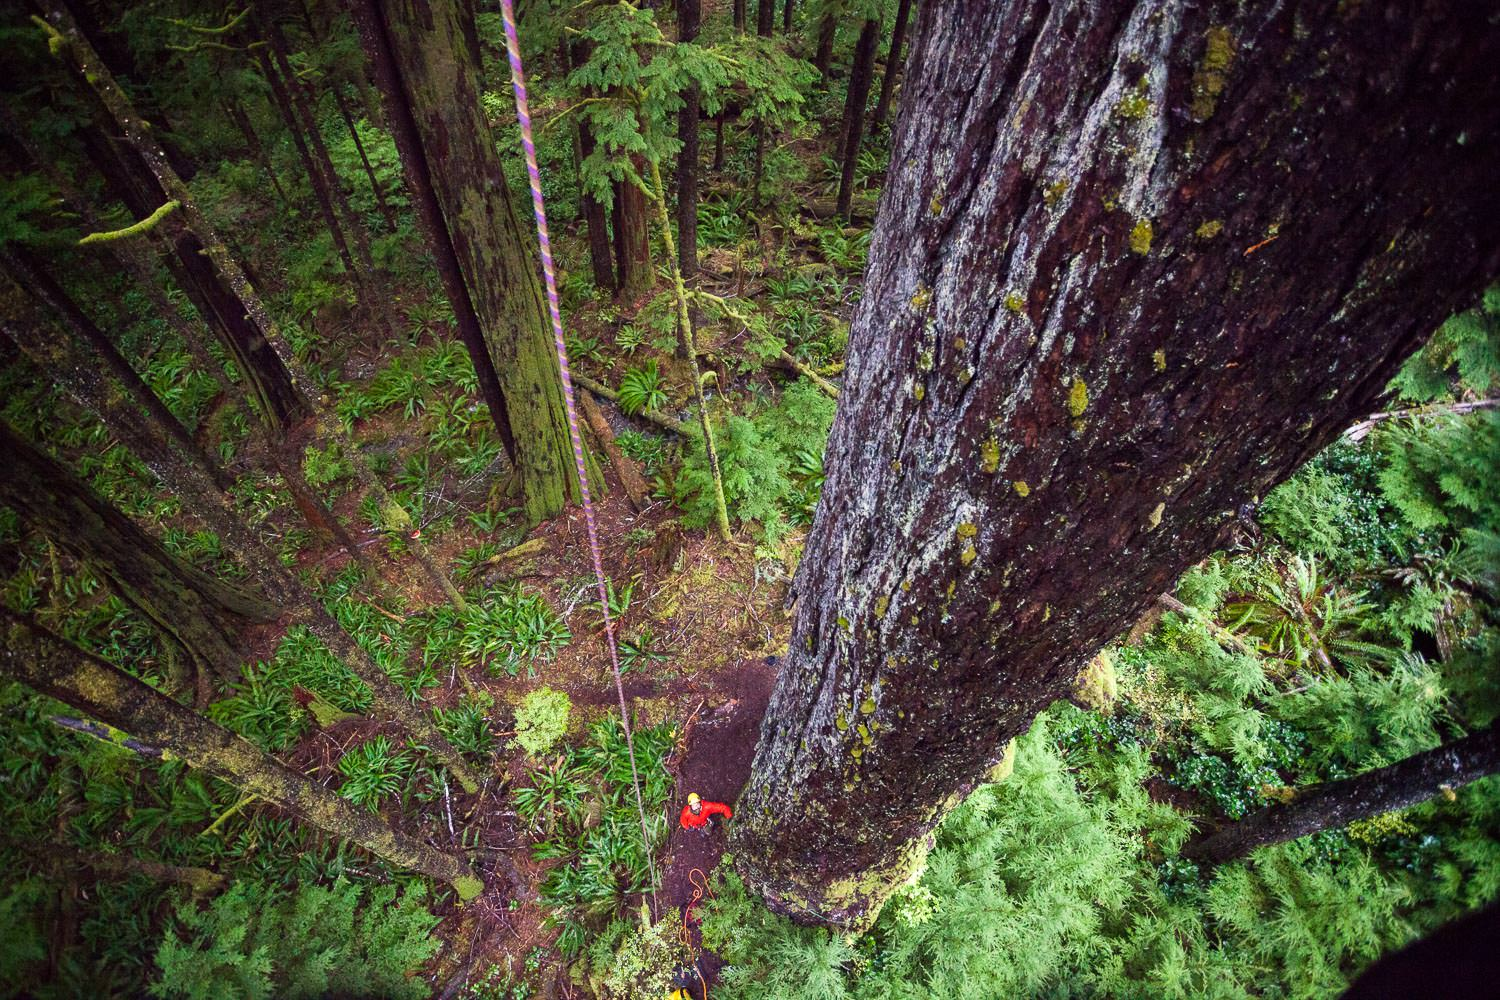 tree-climb-old-growth-douglas-fir-tree.jpg